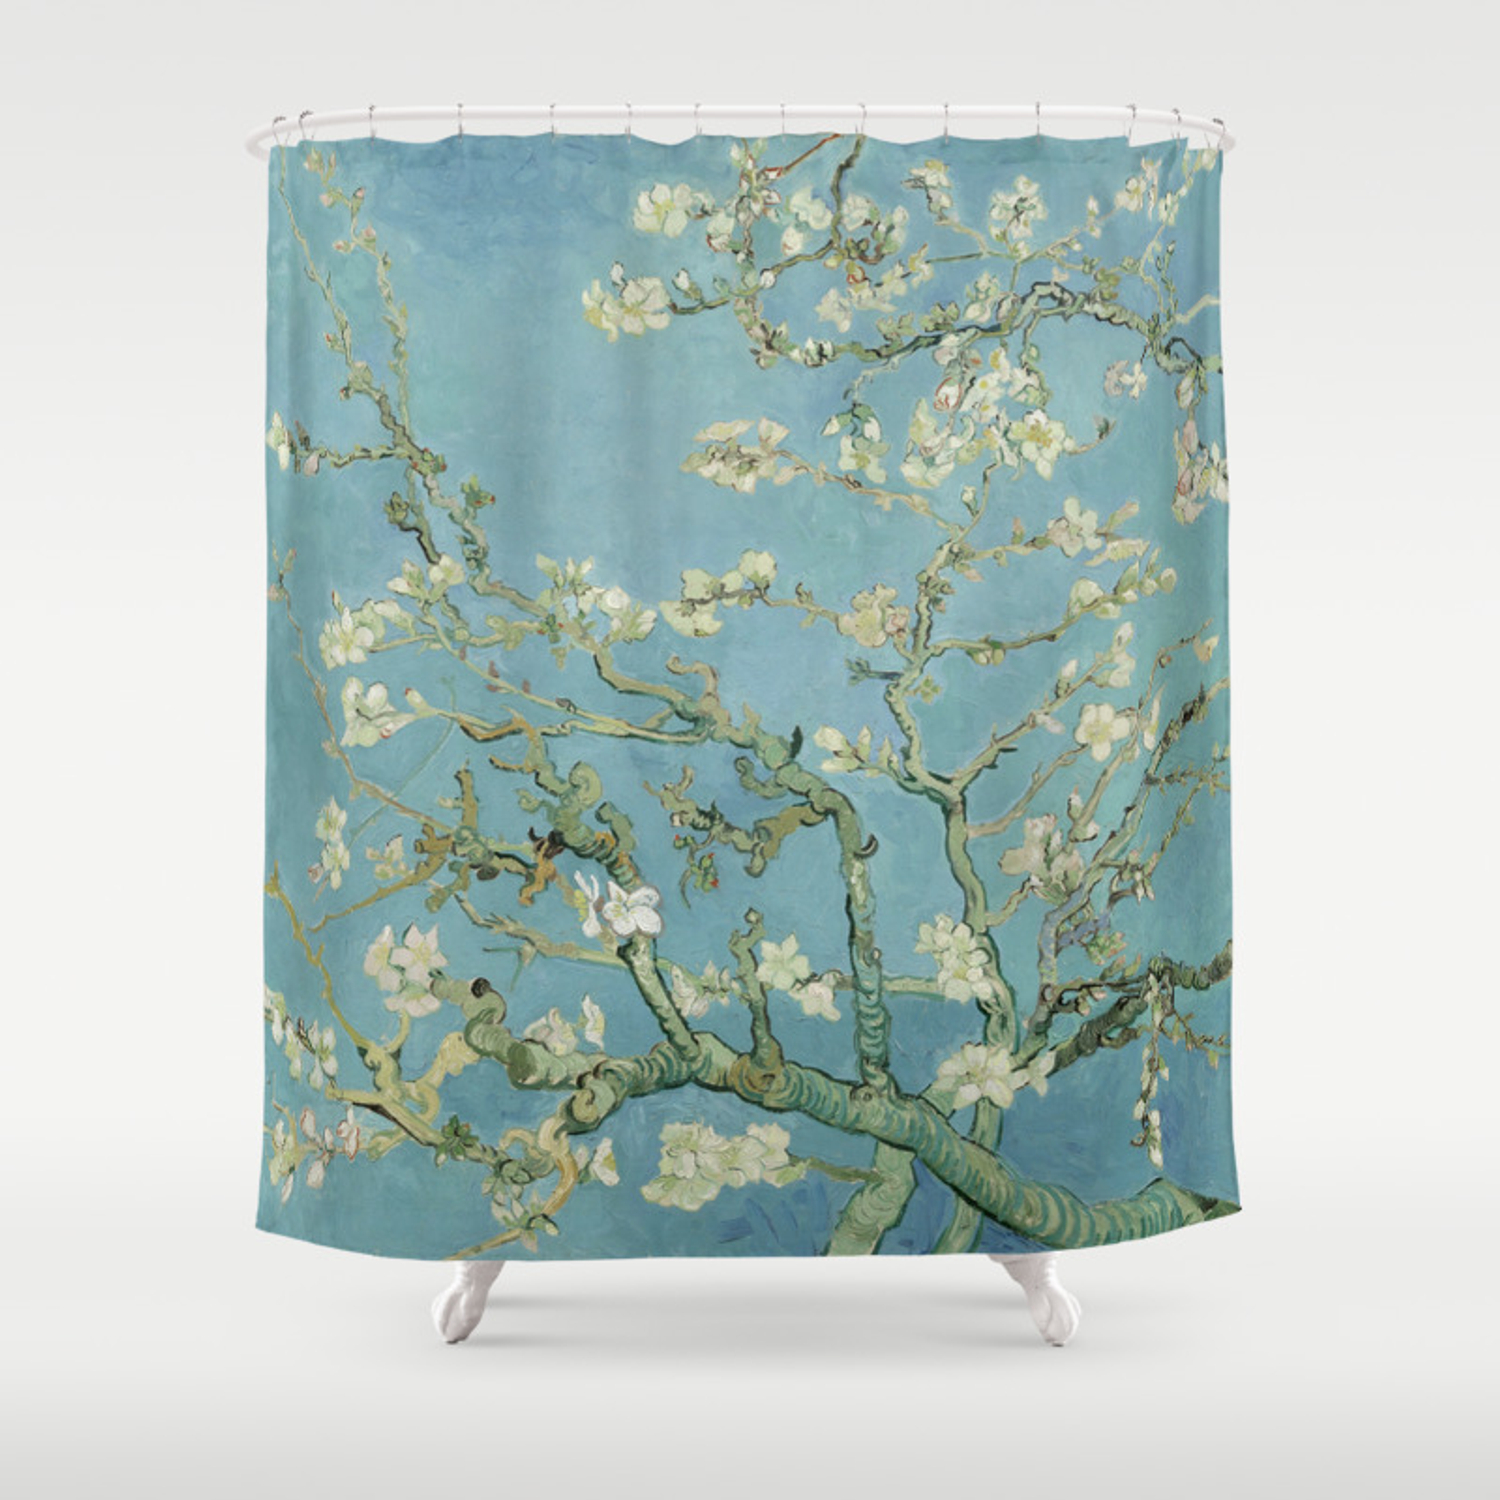 Classic Art Vincent van Gogh in your Bathroom Almond Blossoms Shower Curtains